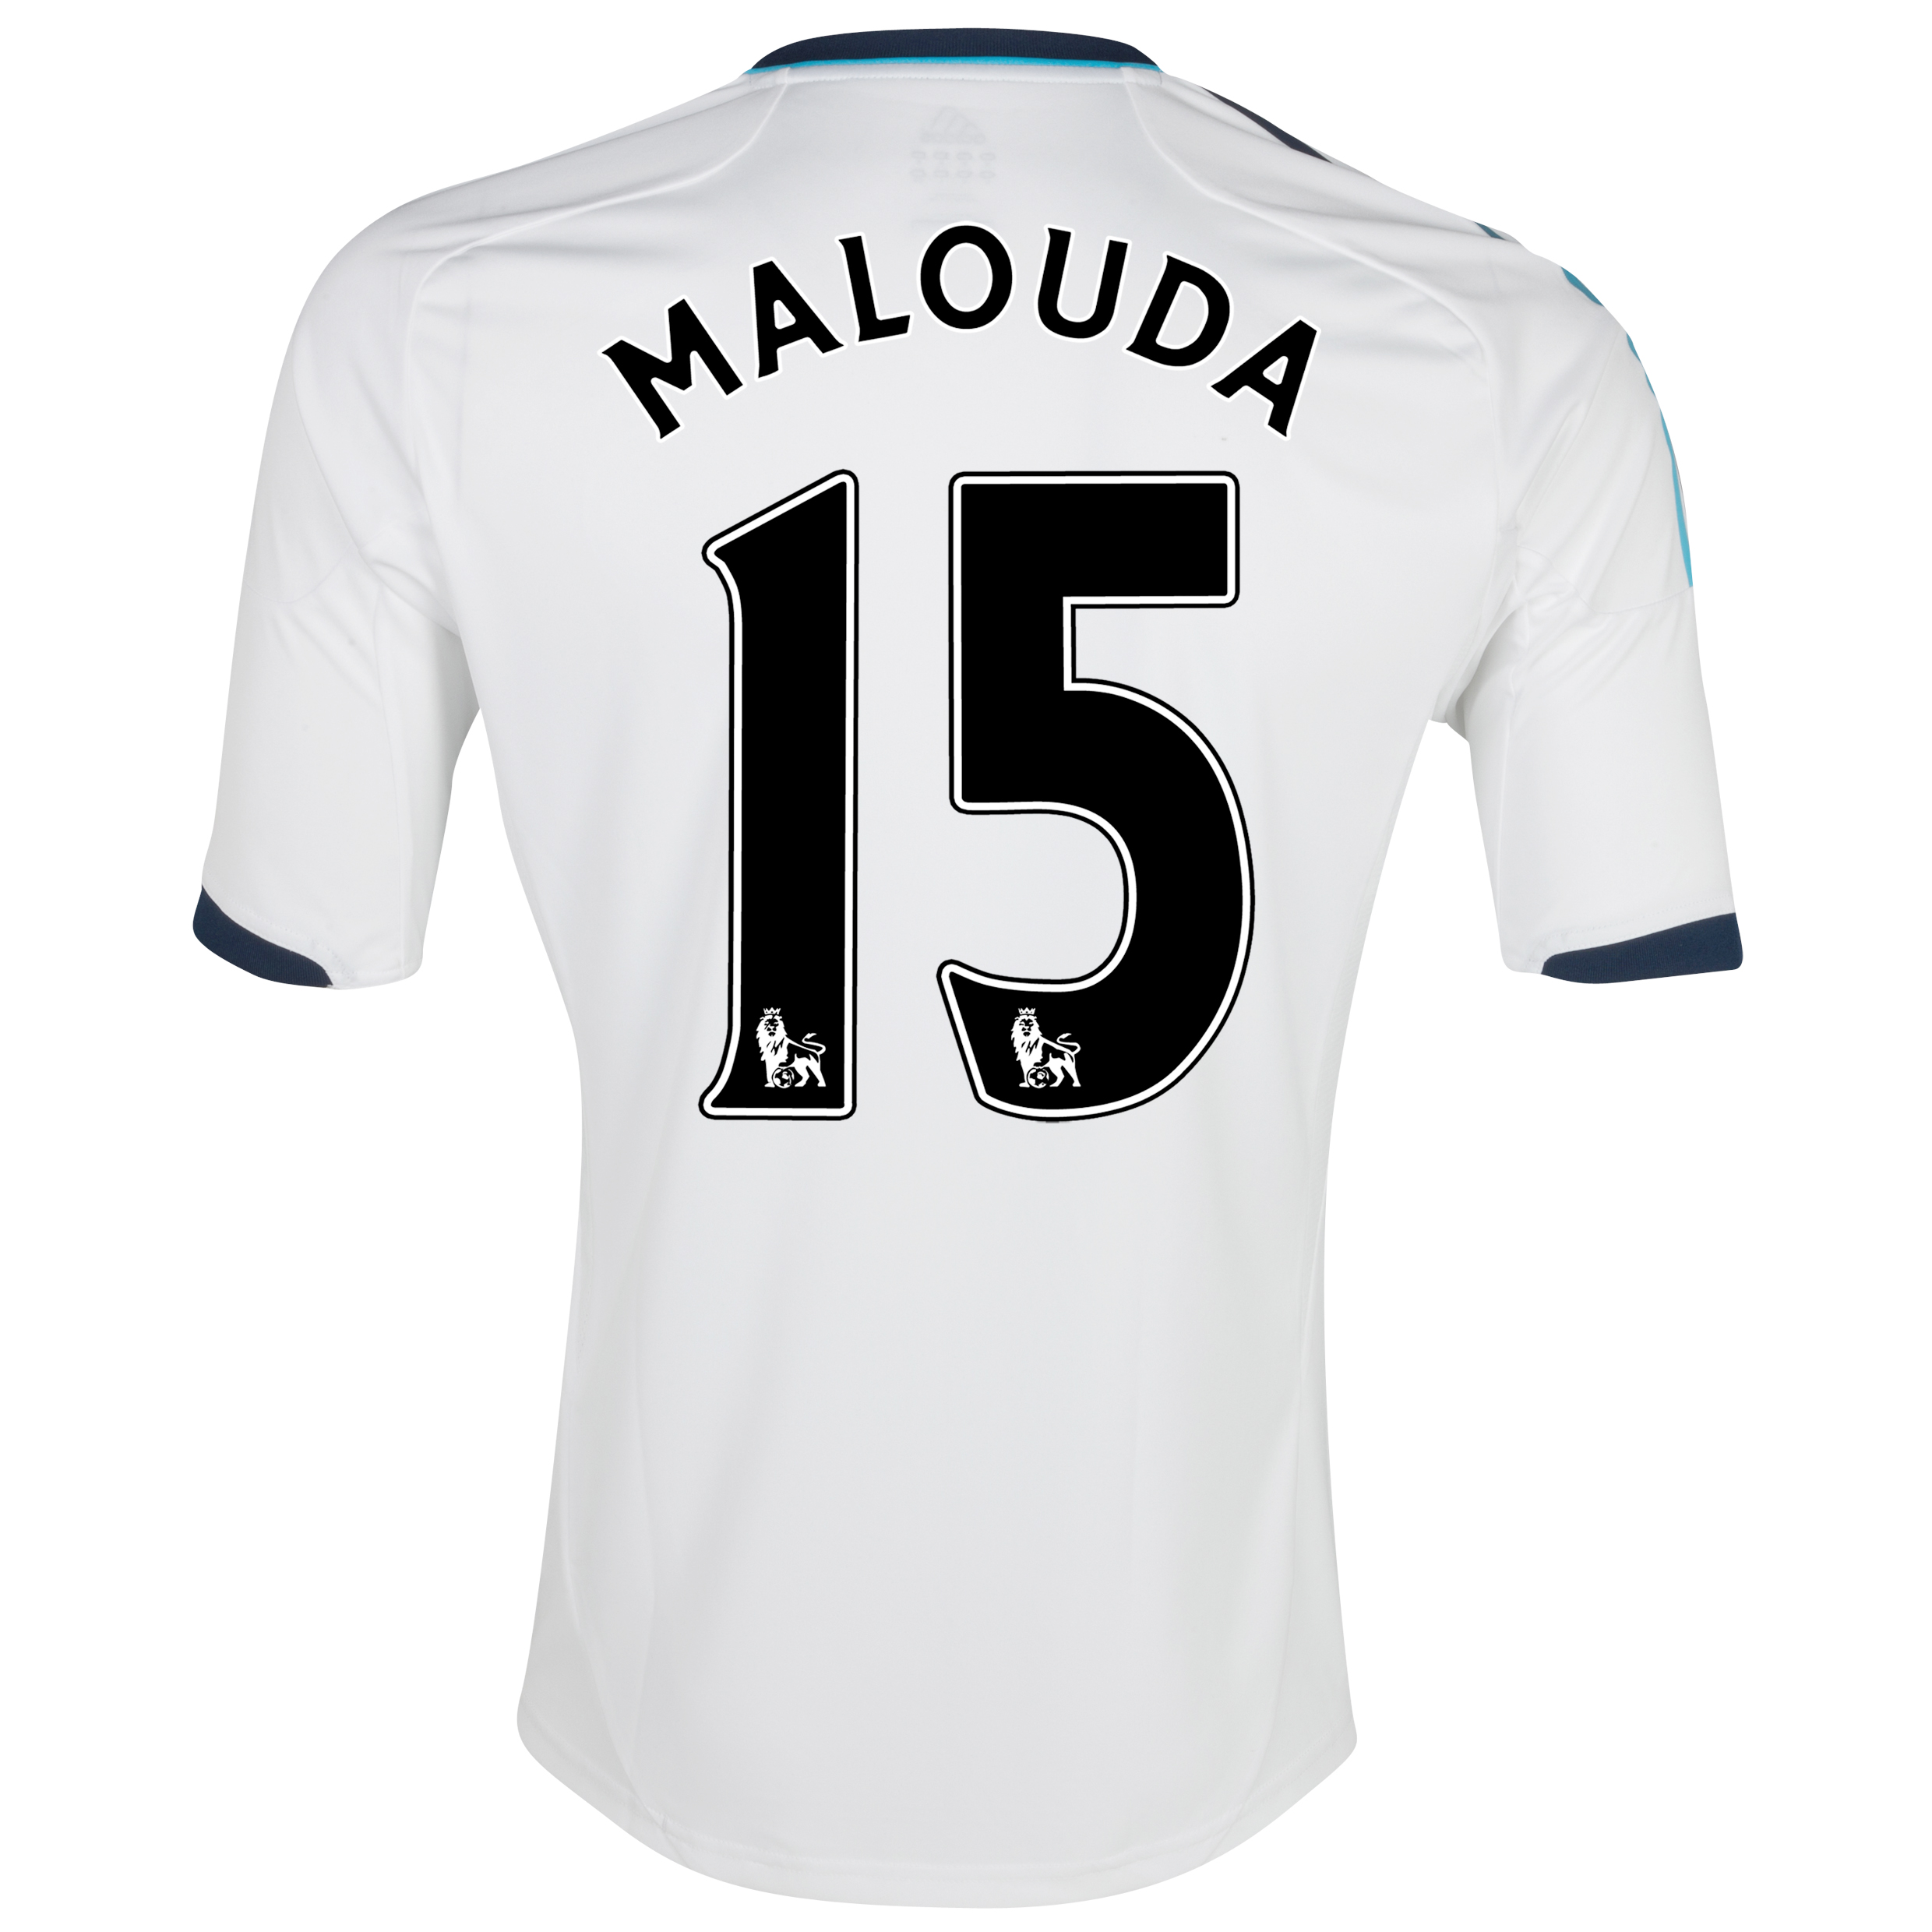 Chelsea Away Shirt 2012/13 - Youths with Malouda 15 printing